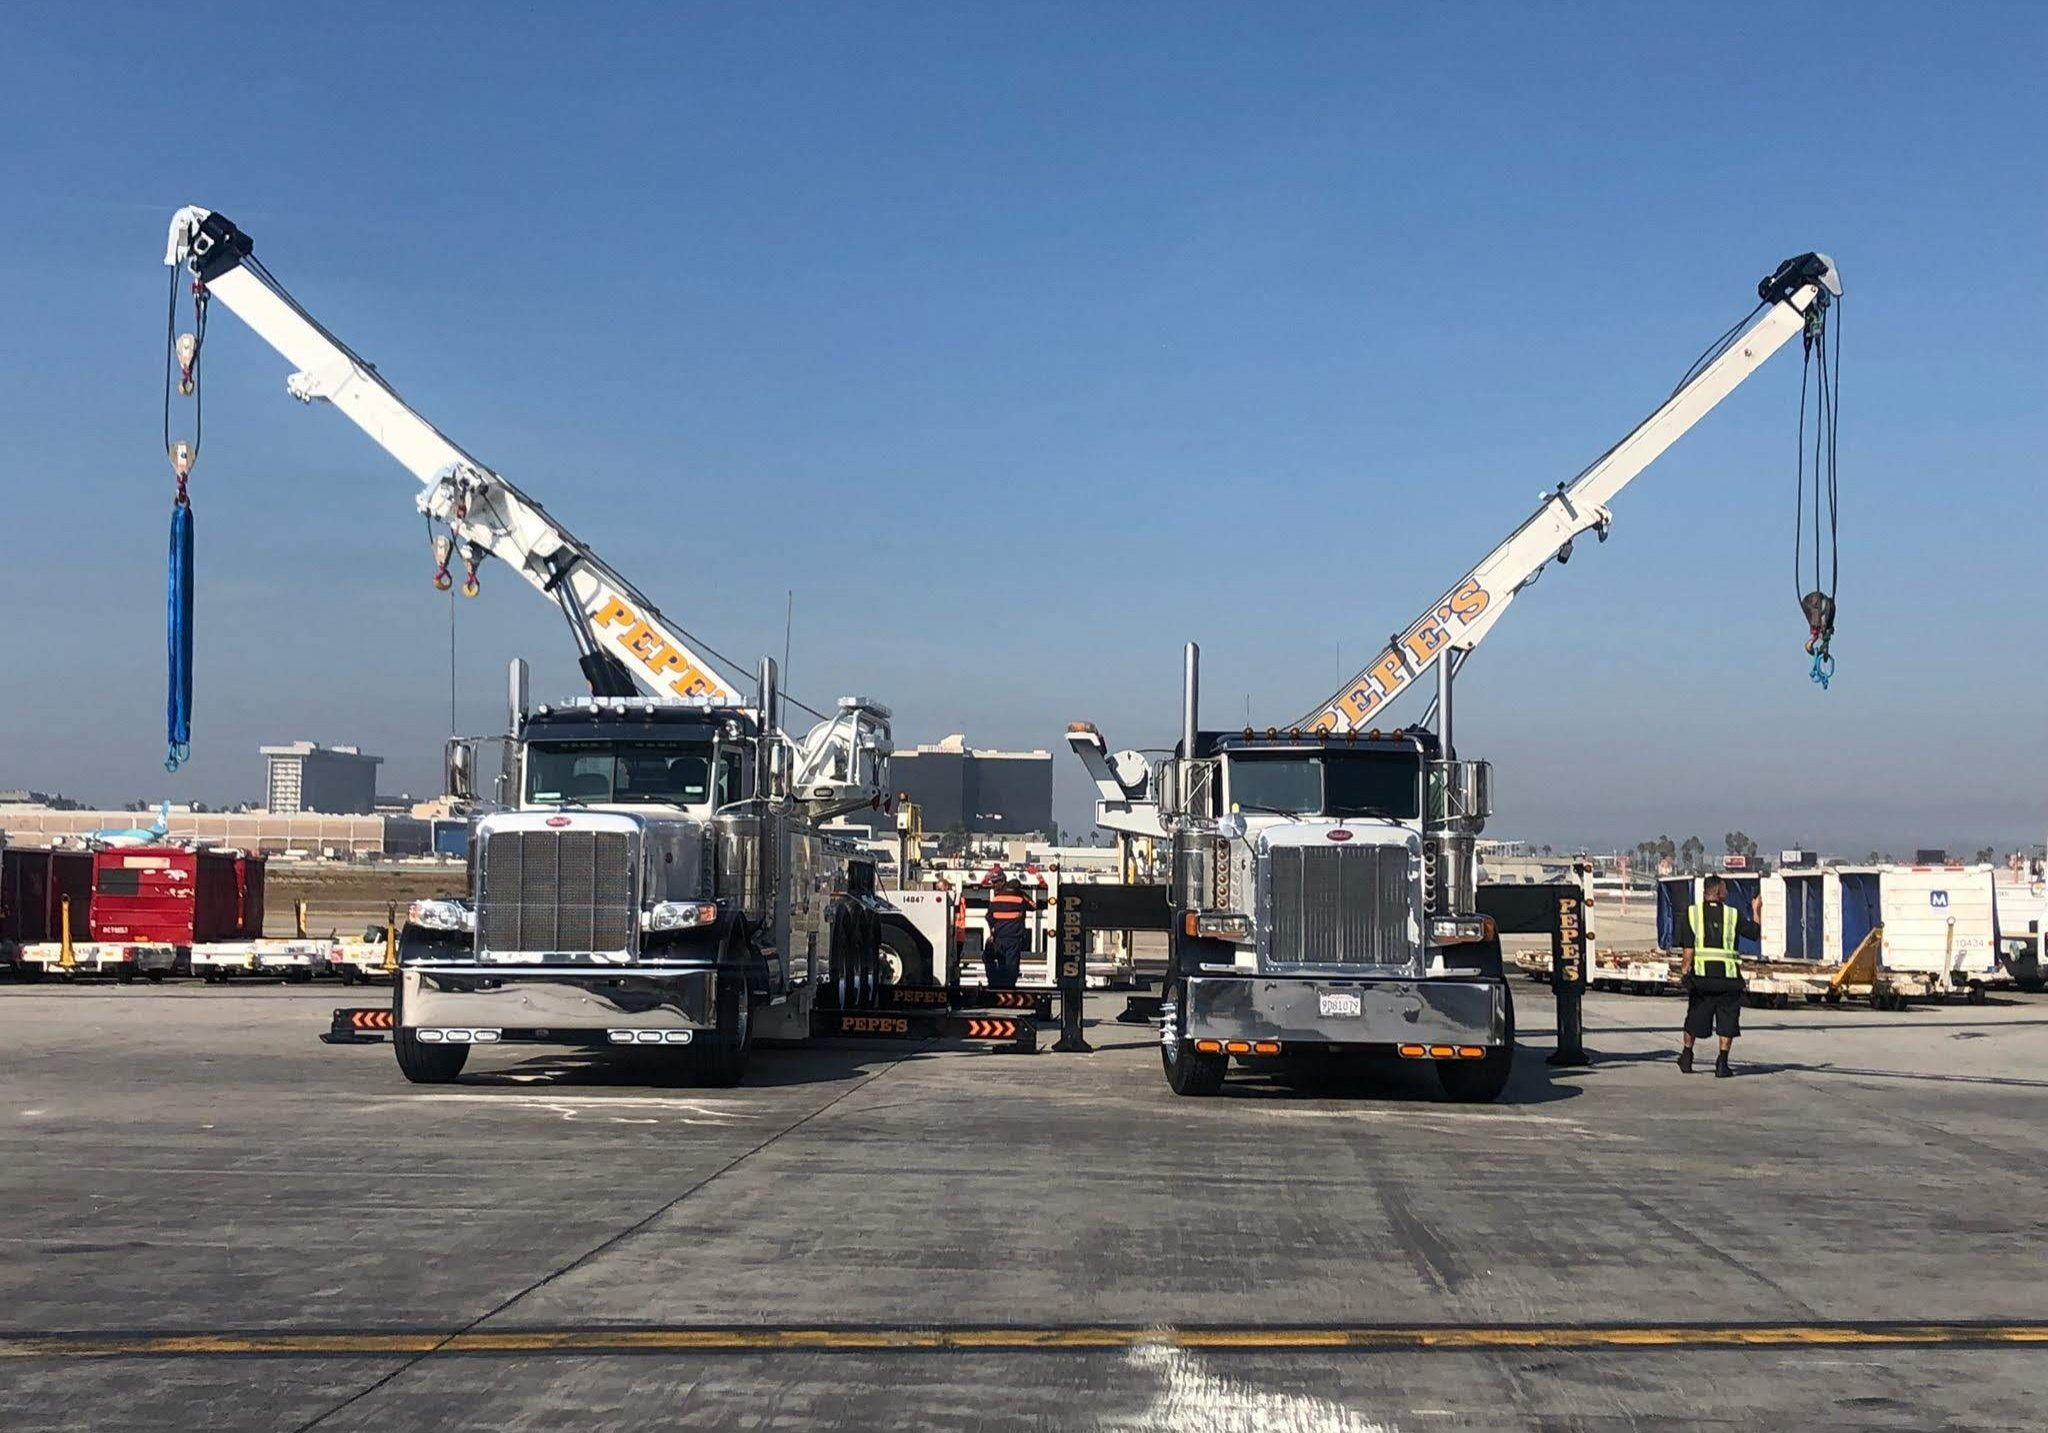 LAX towing and lifts